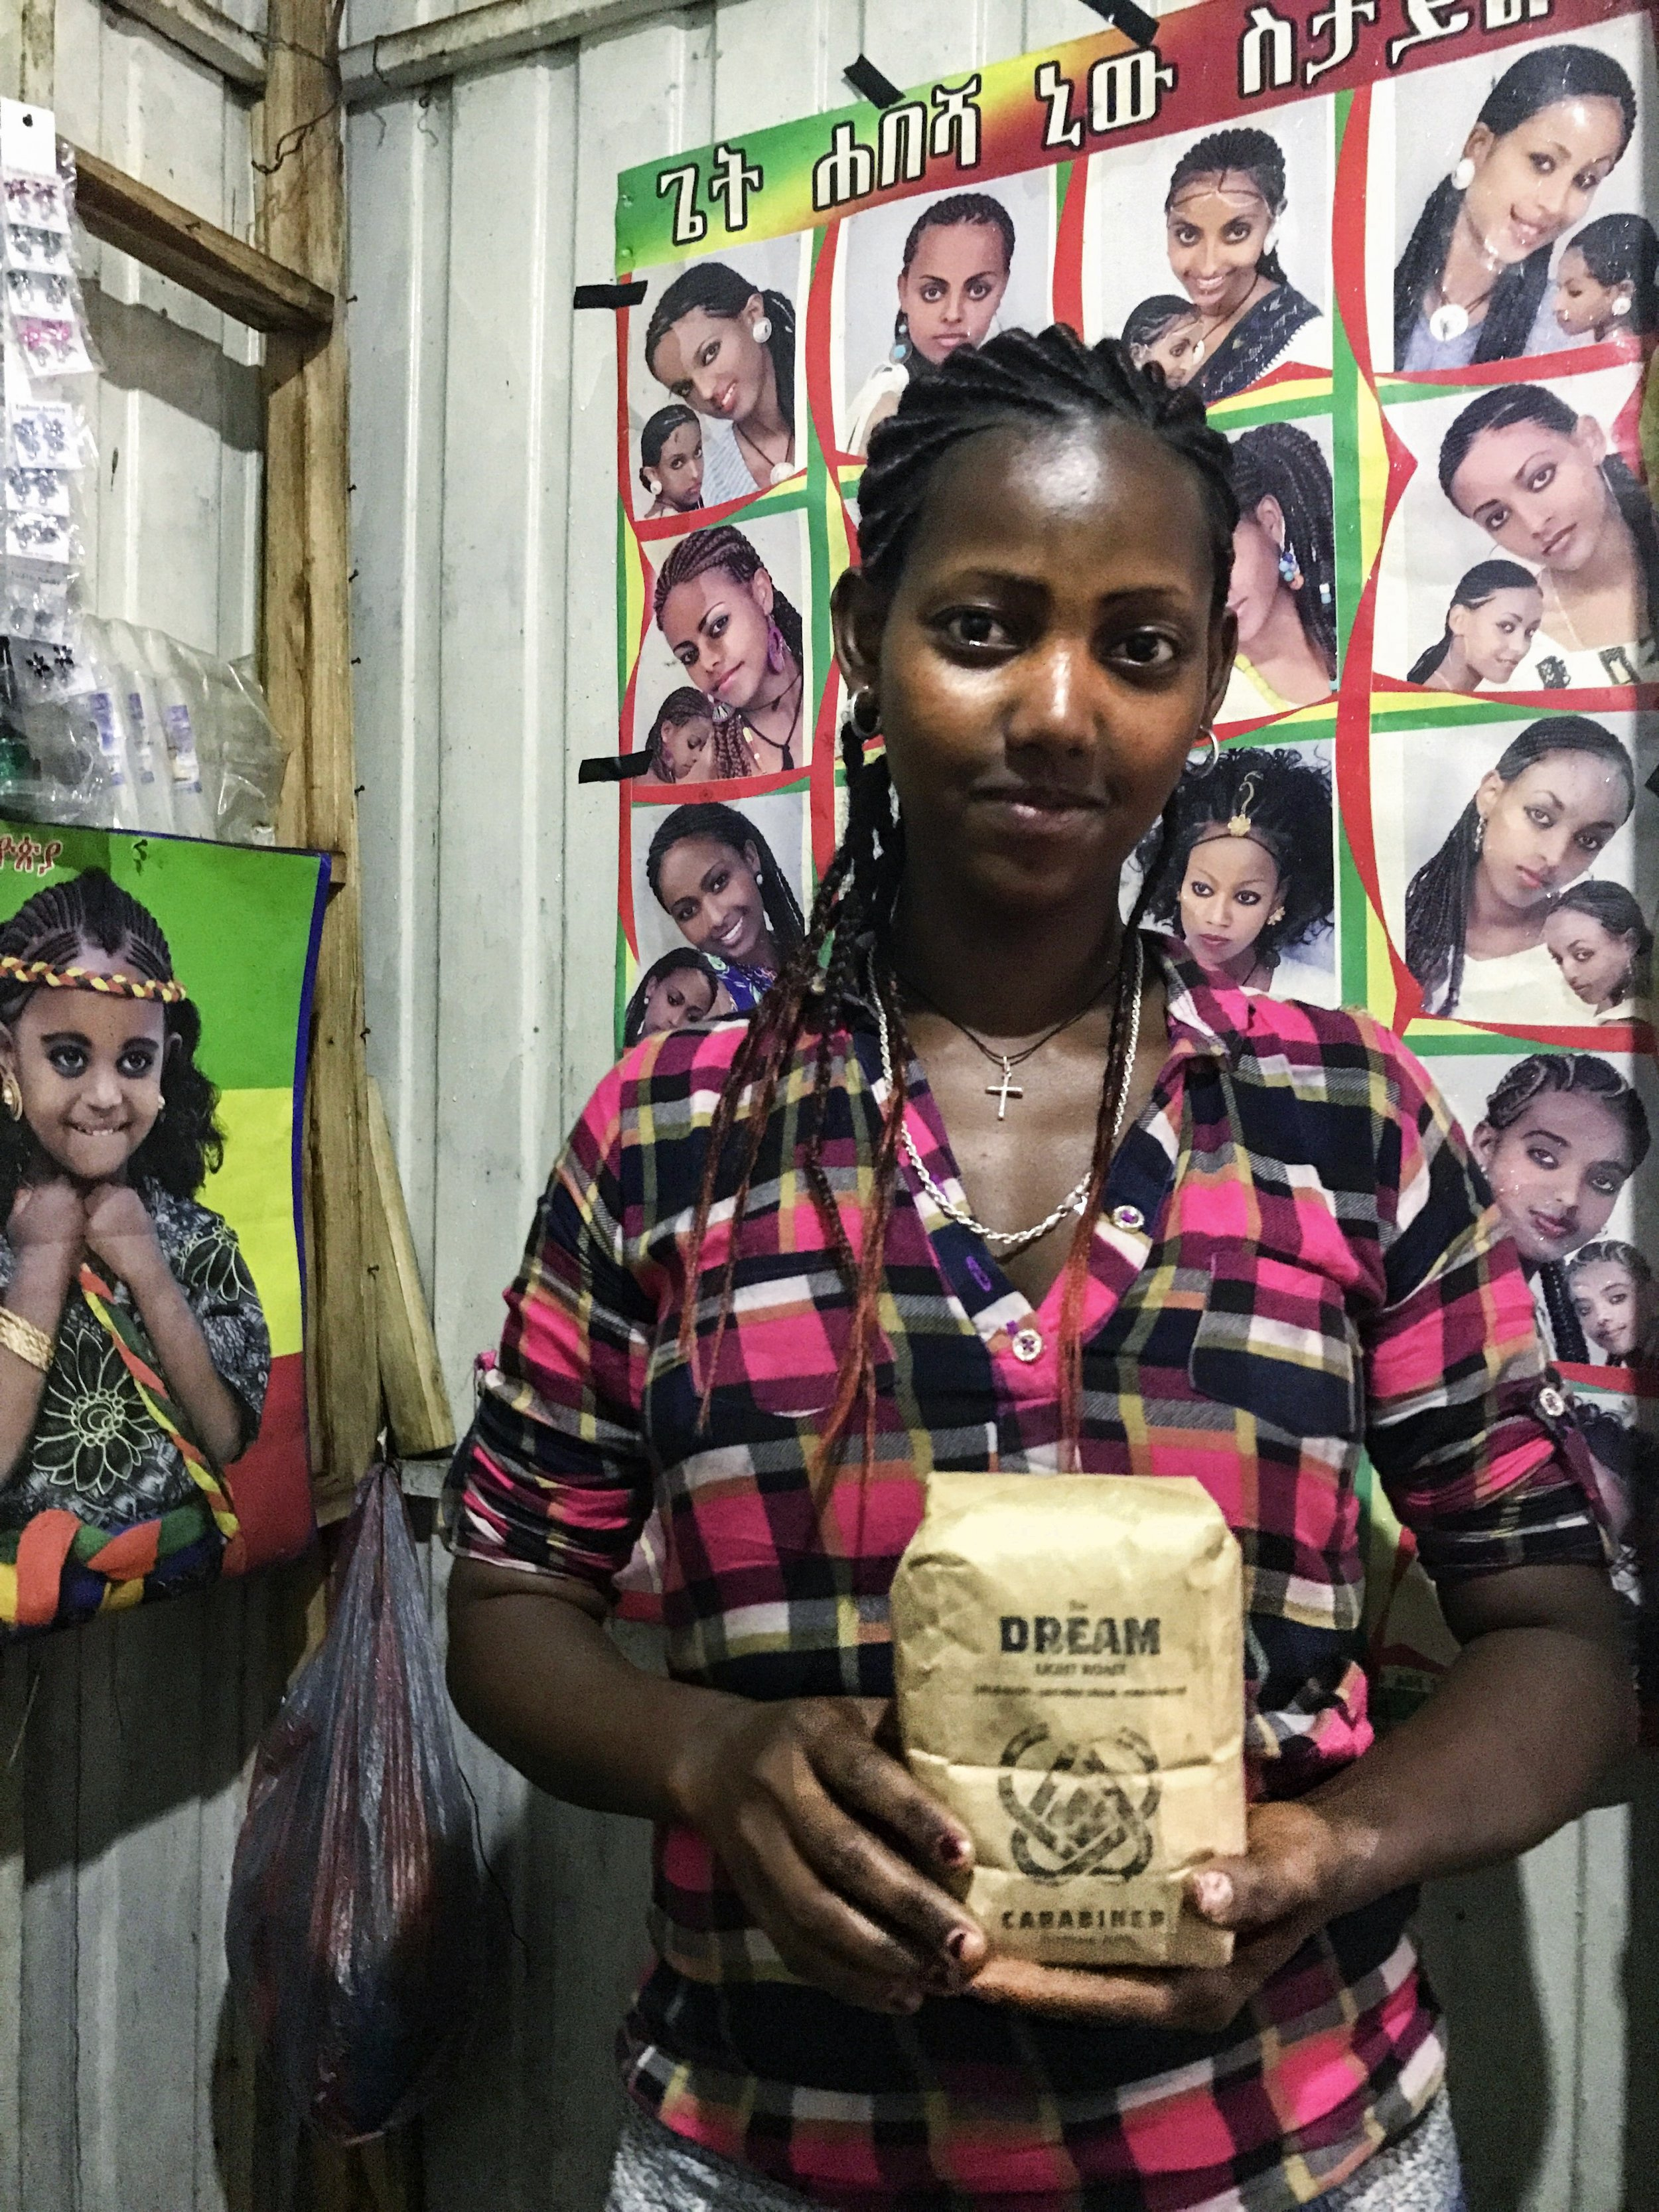 The woman pictured helped Brooke get ready for the Ashendiye Festival and was a special part of the experience in Lalibela. She told Brooke the next day that she dedicated her prayers that morning to Erik at Carabiner Coffee. Ameseginalu. -